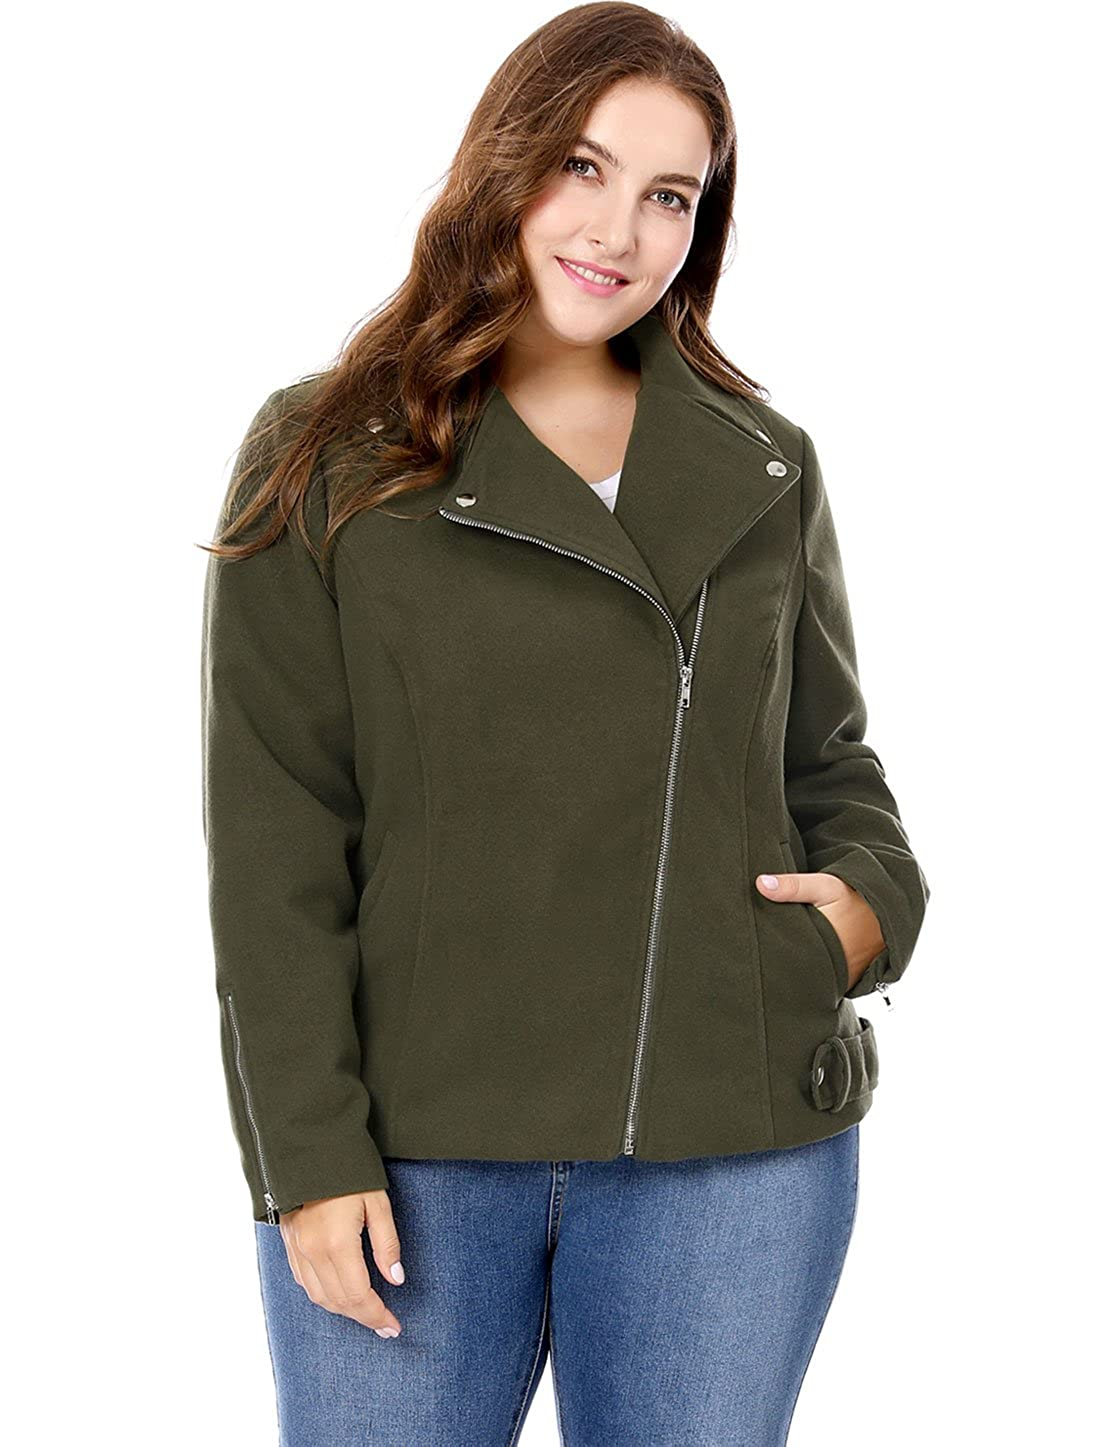 uxcell Womens Convertible Collar Inclined Zip Closure Plus Size Moto Jacket